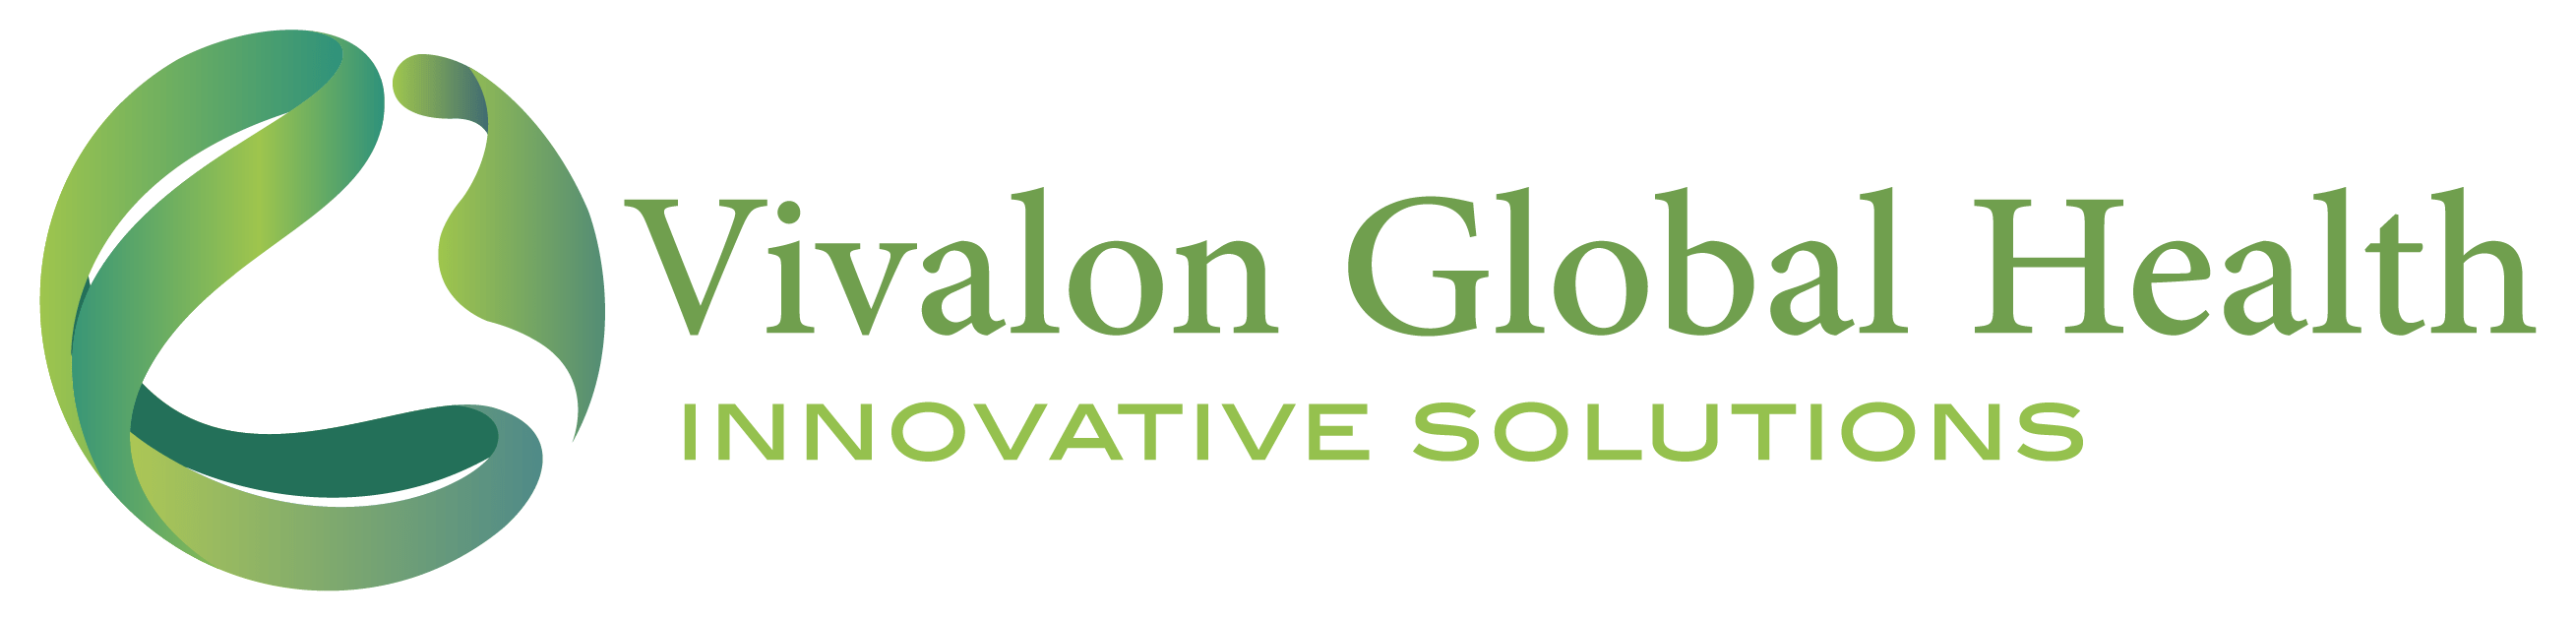 Vivalon Global Health